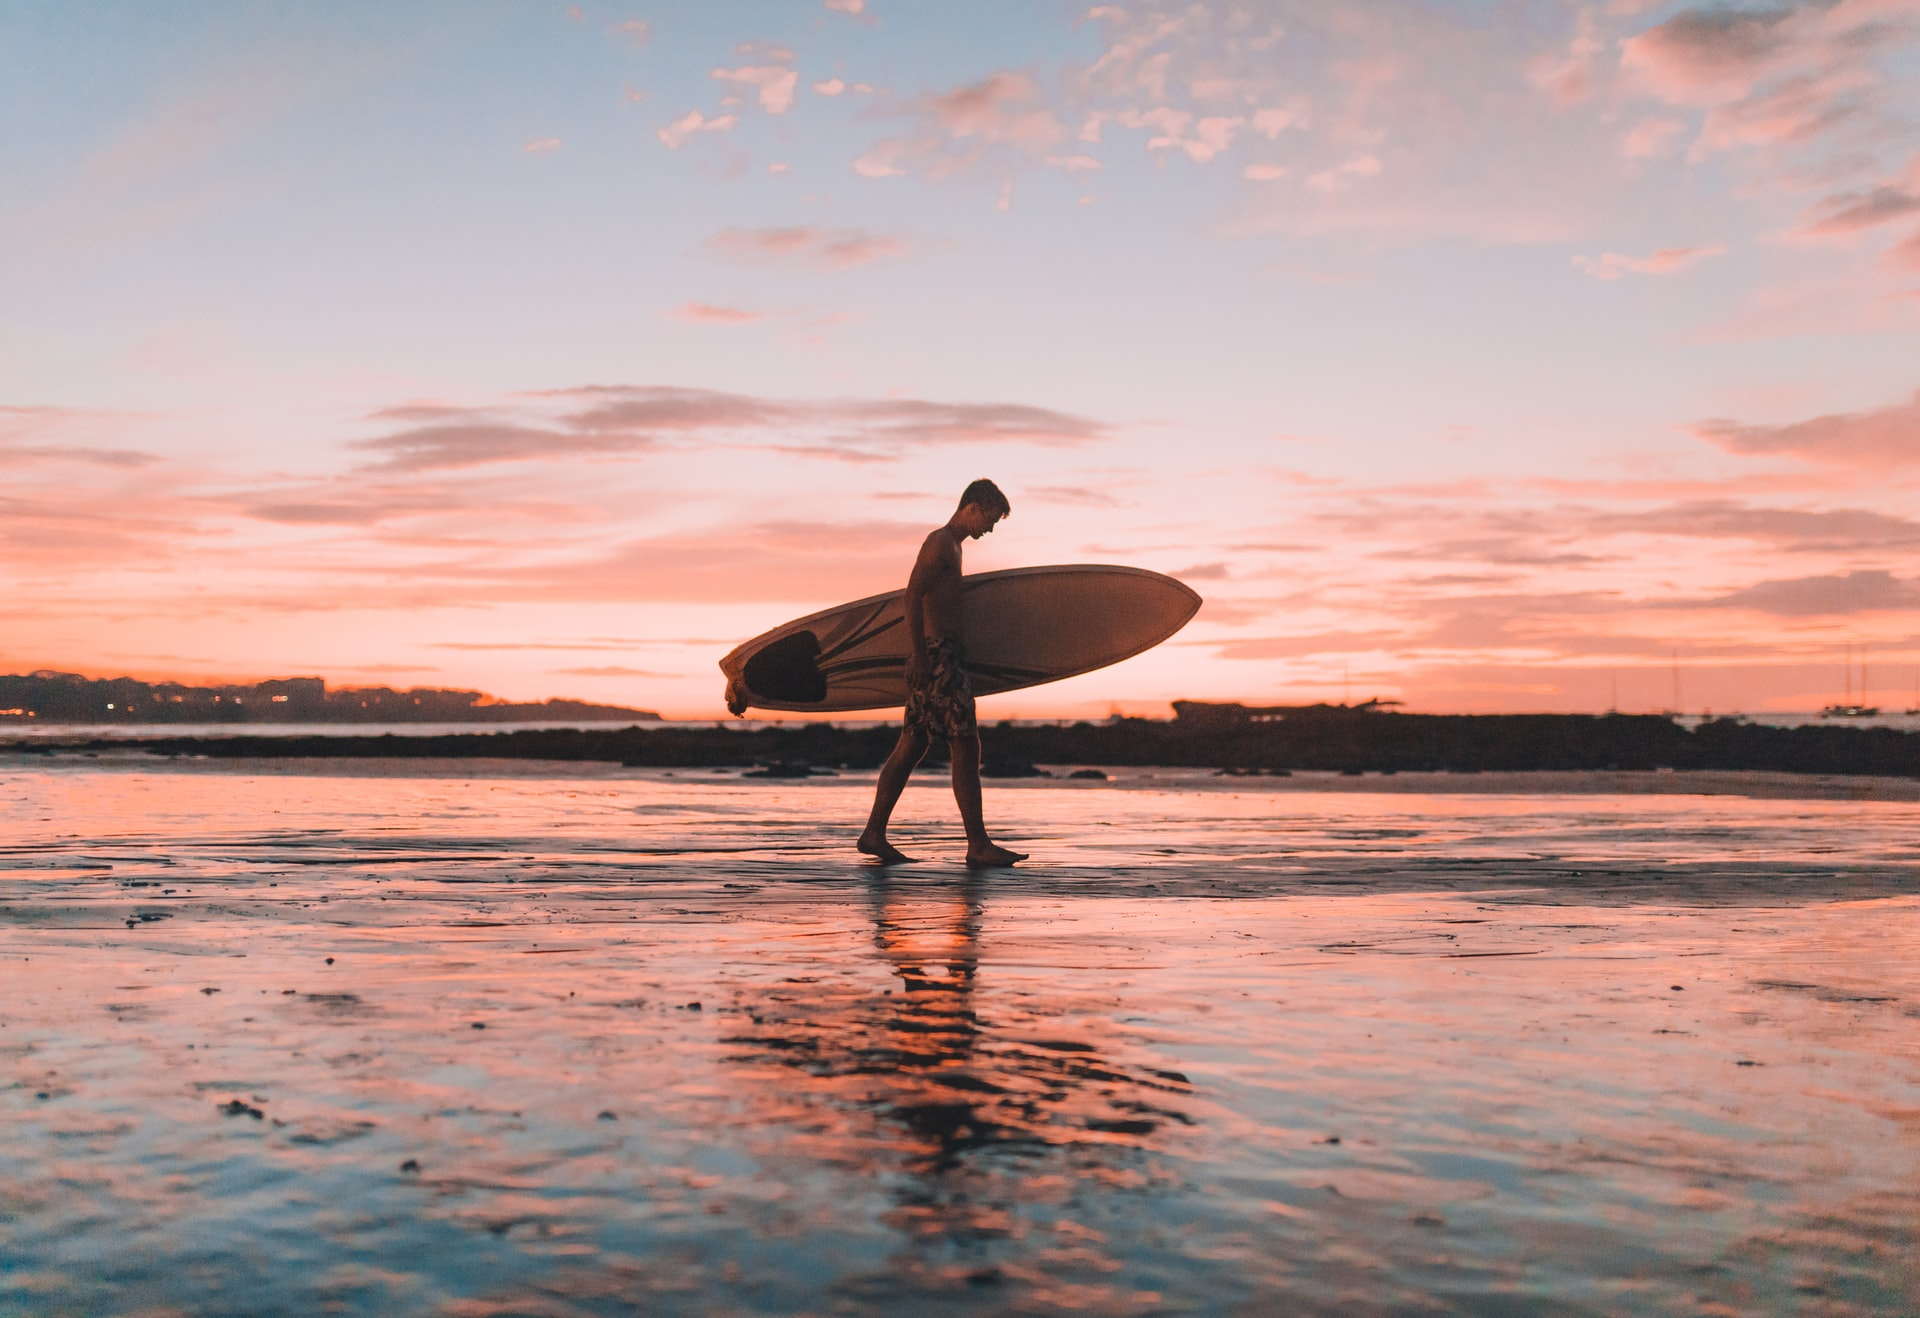 Man holding a swallow tail surfboard